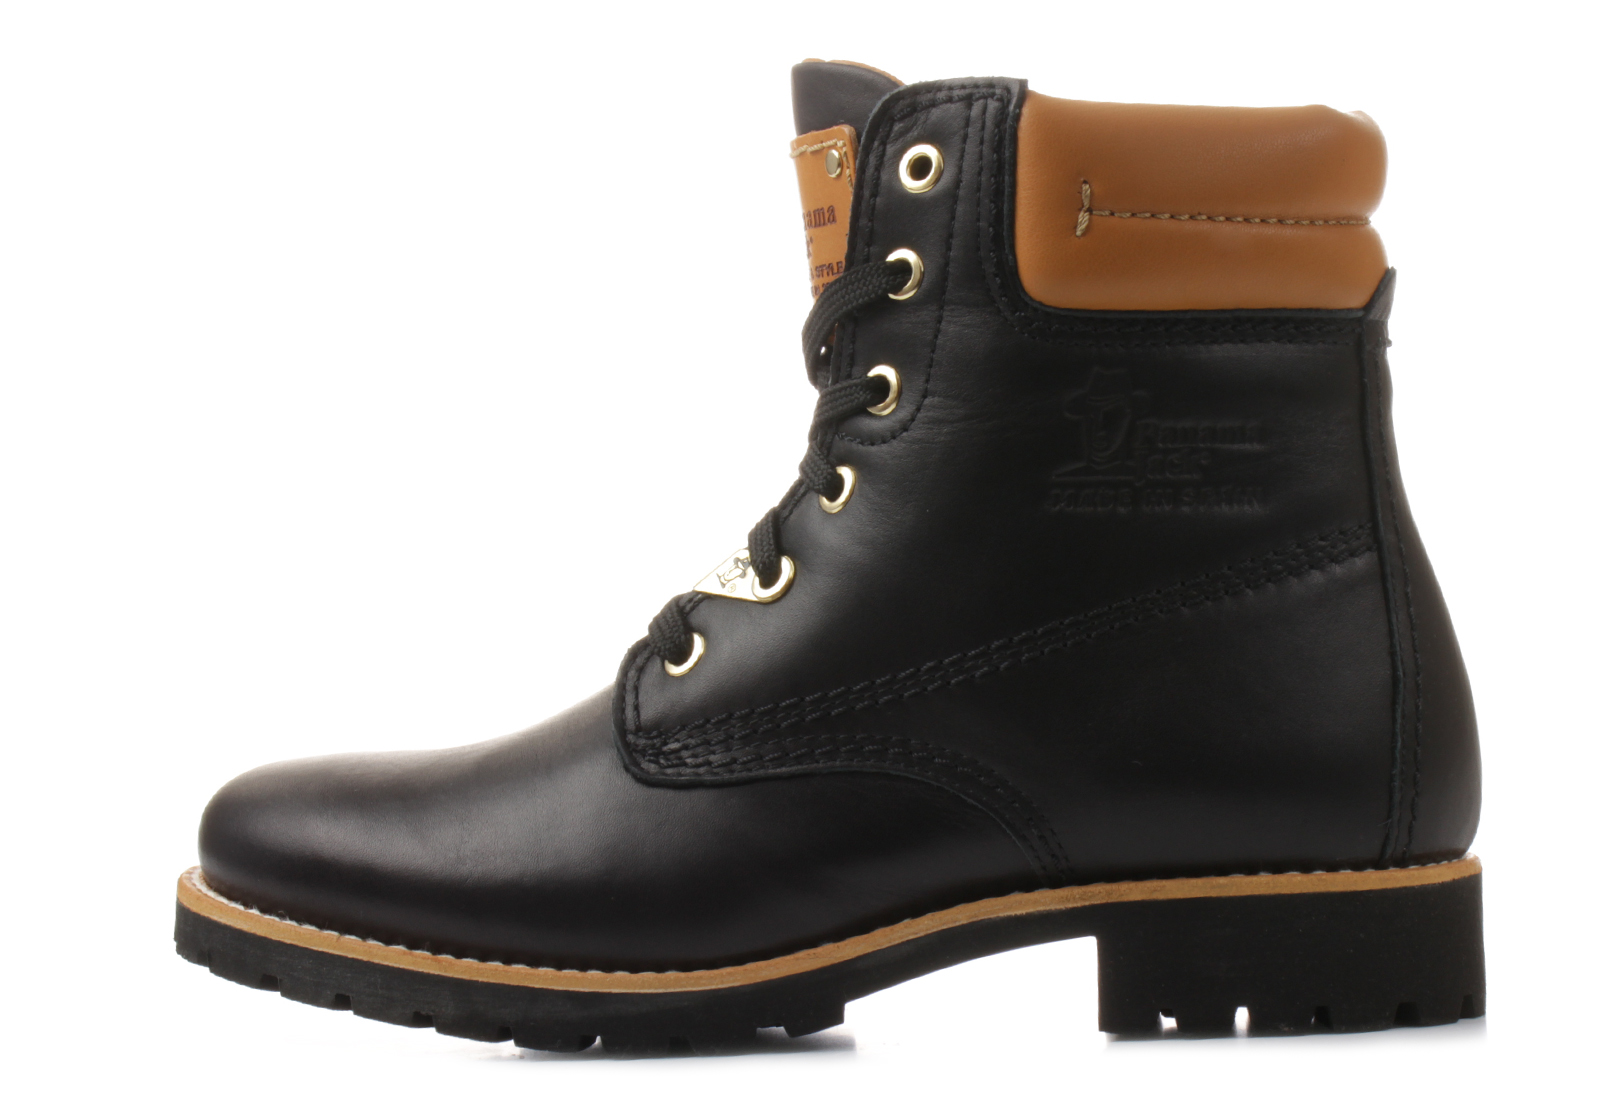 panama jack boots panama 03 travelling panama tr b10 online shop for sneakers shoes and boots. Black Bedroom Furniture Sets. Home Design Ideas